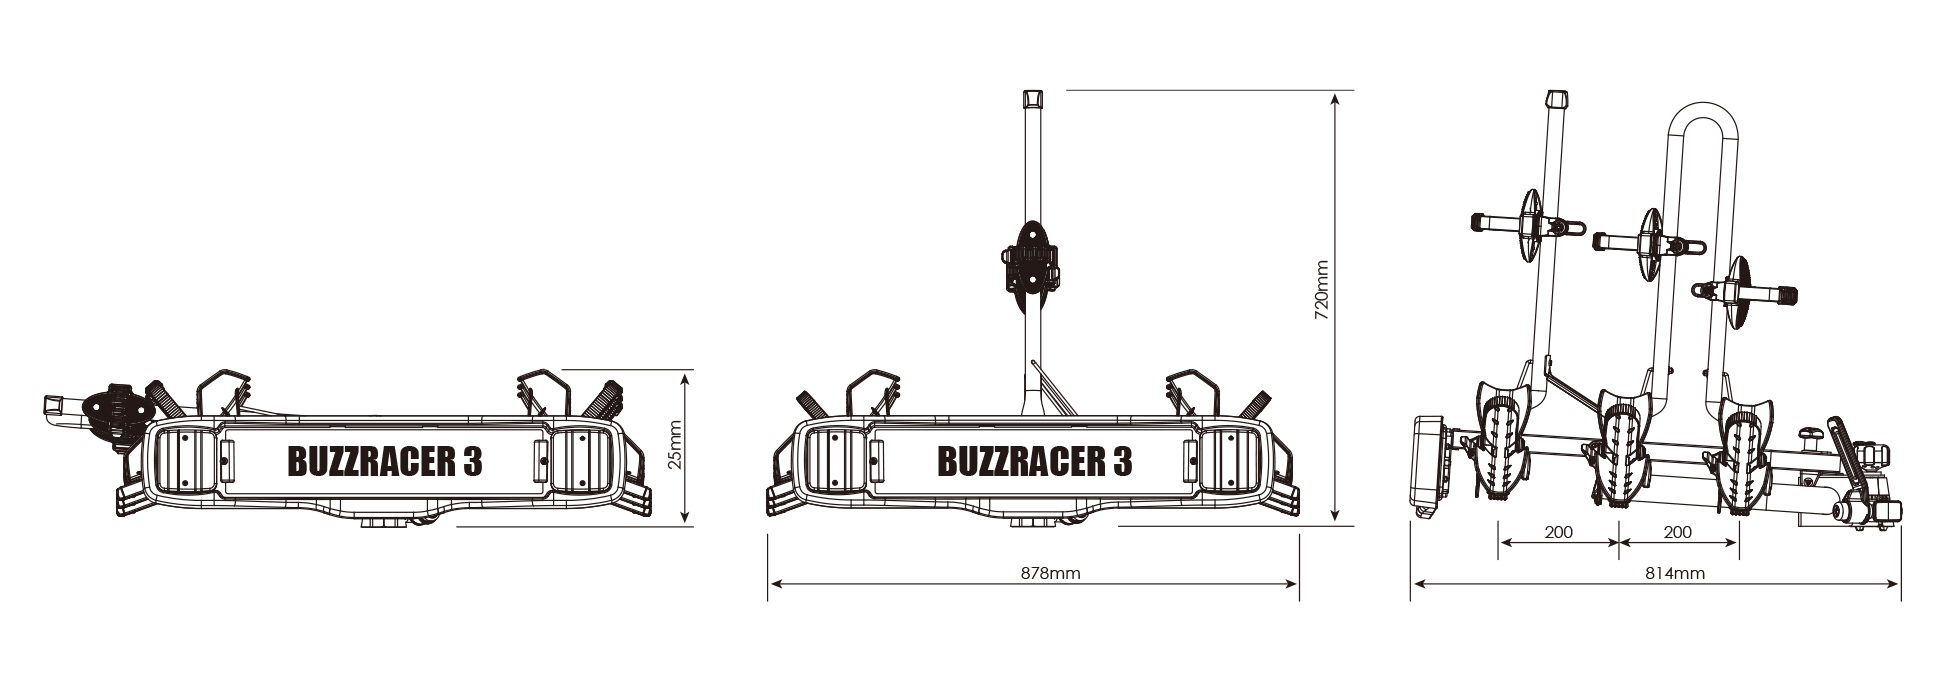 BUZZRACK BuzzRacer 3 technical specifications